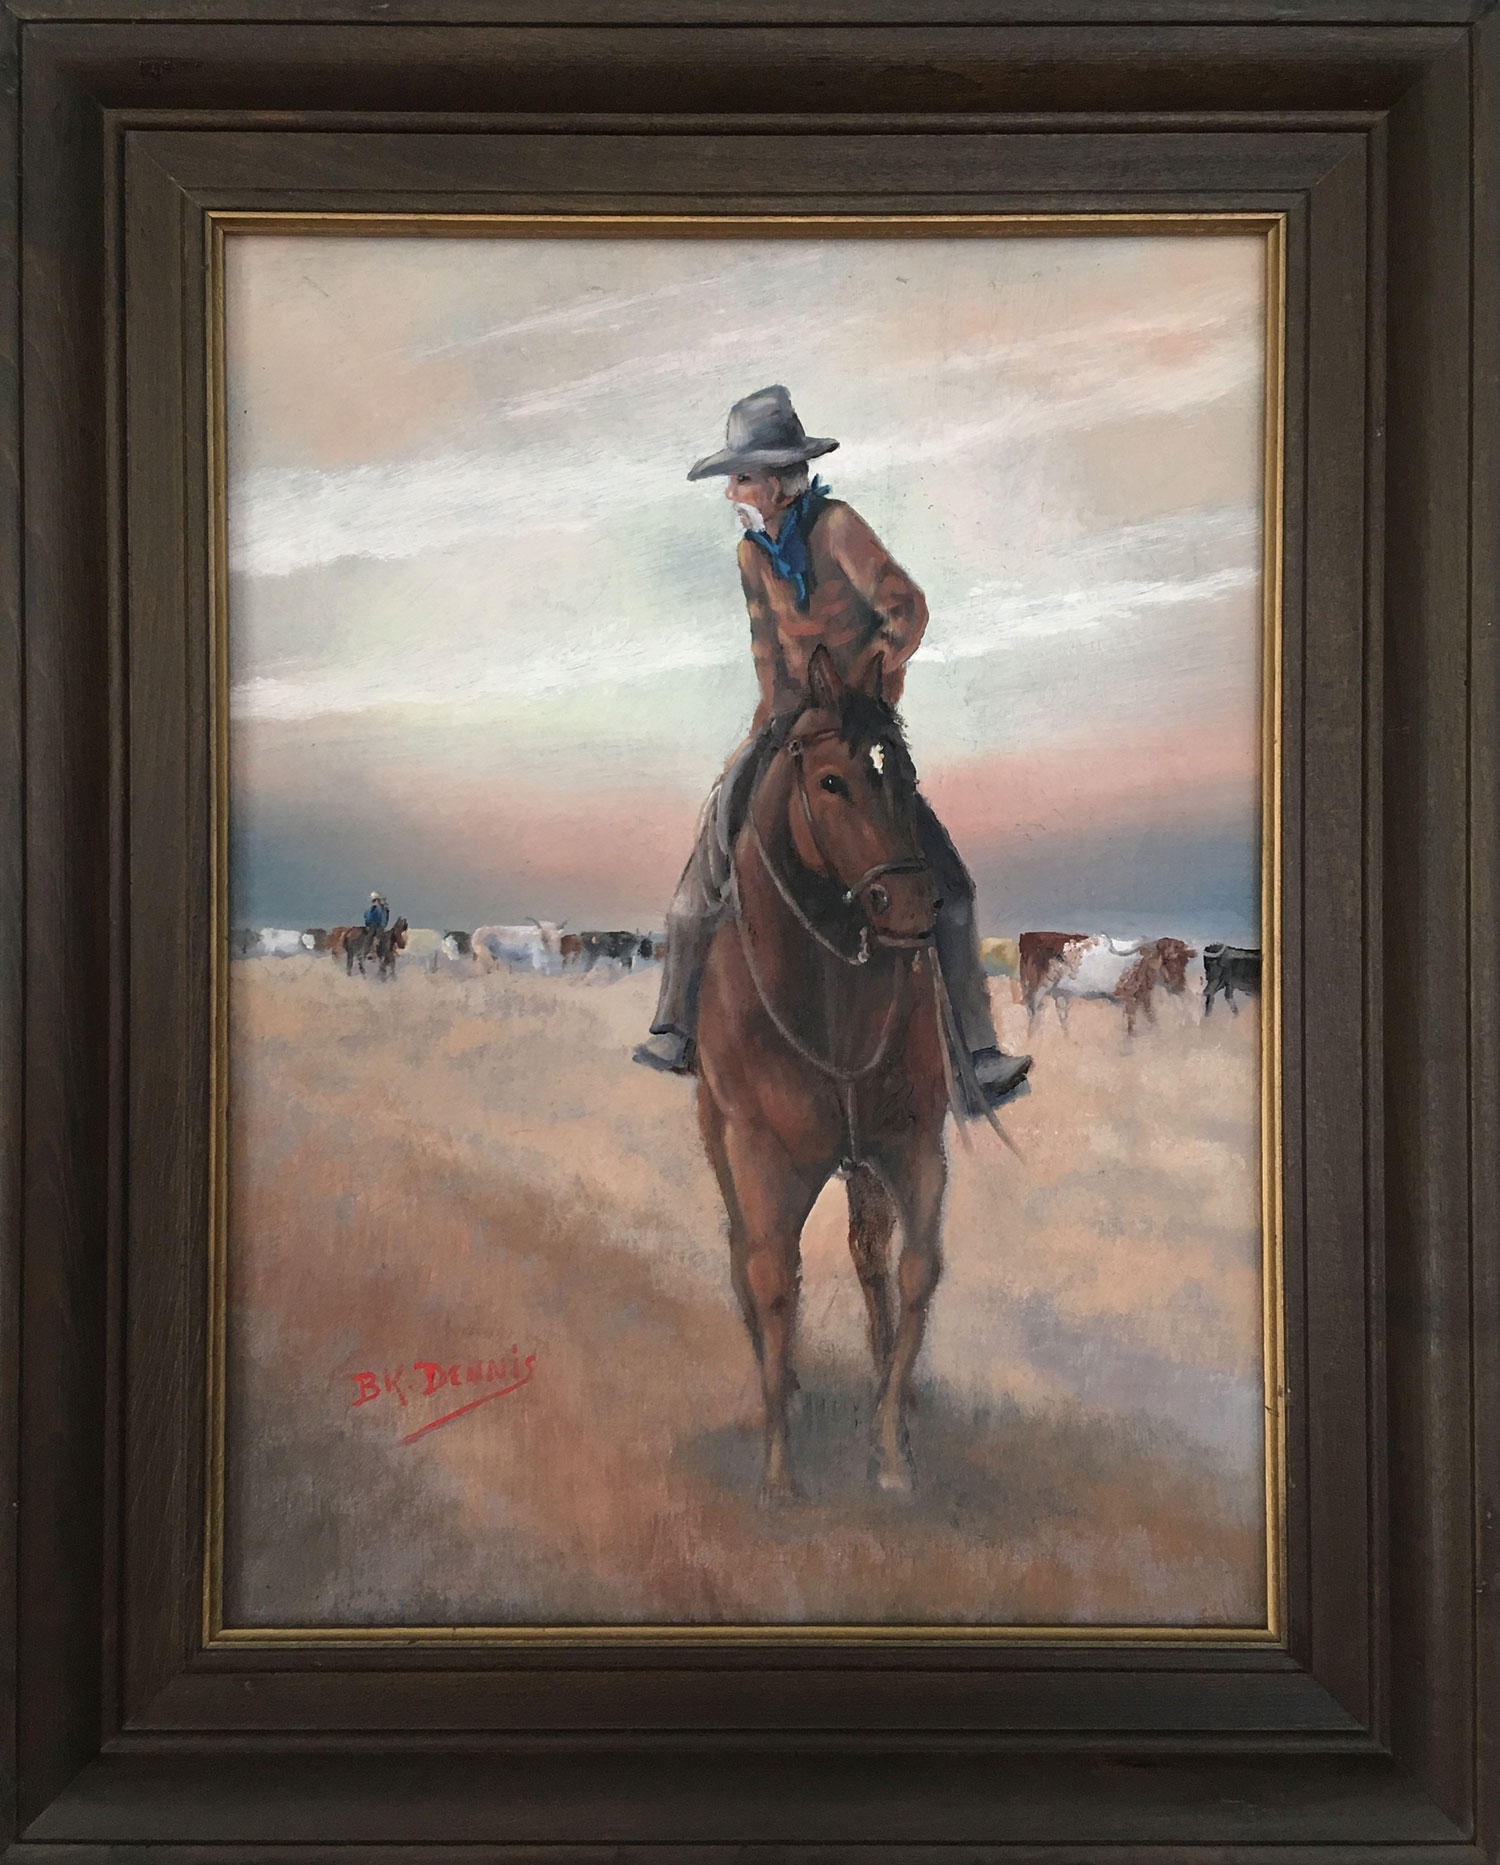 Oil painting by BK Dennis of man on horseback looking back toward cattle herd.